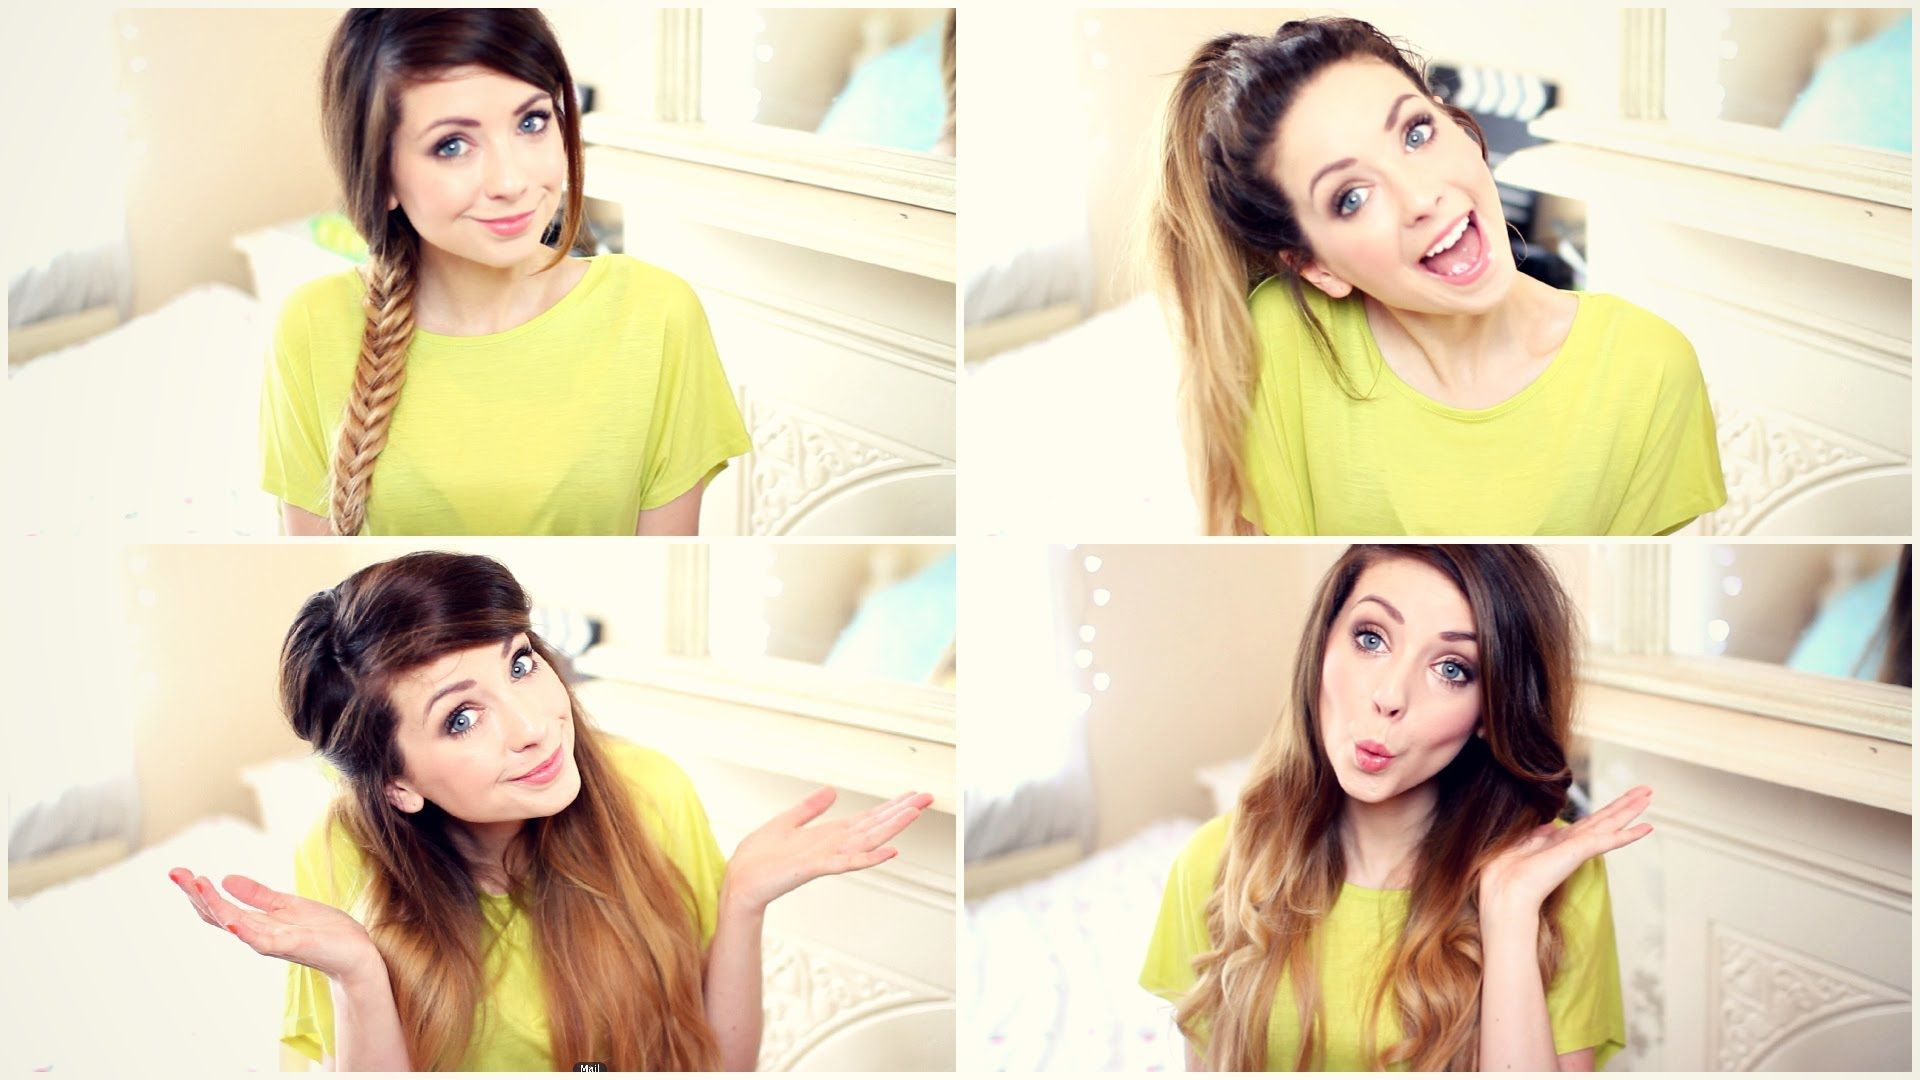 Hairstyles for long hair zoella hairstyles for long hair